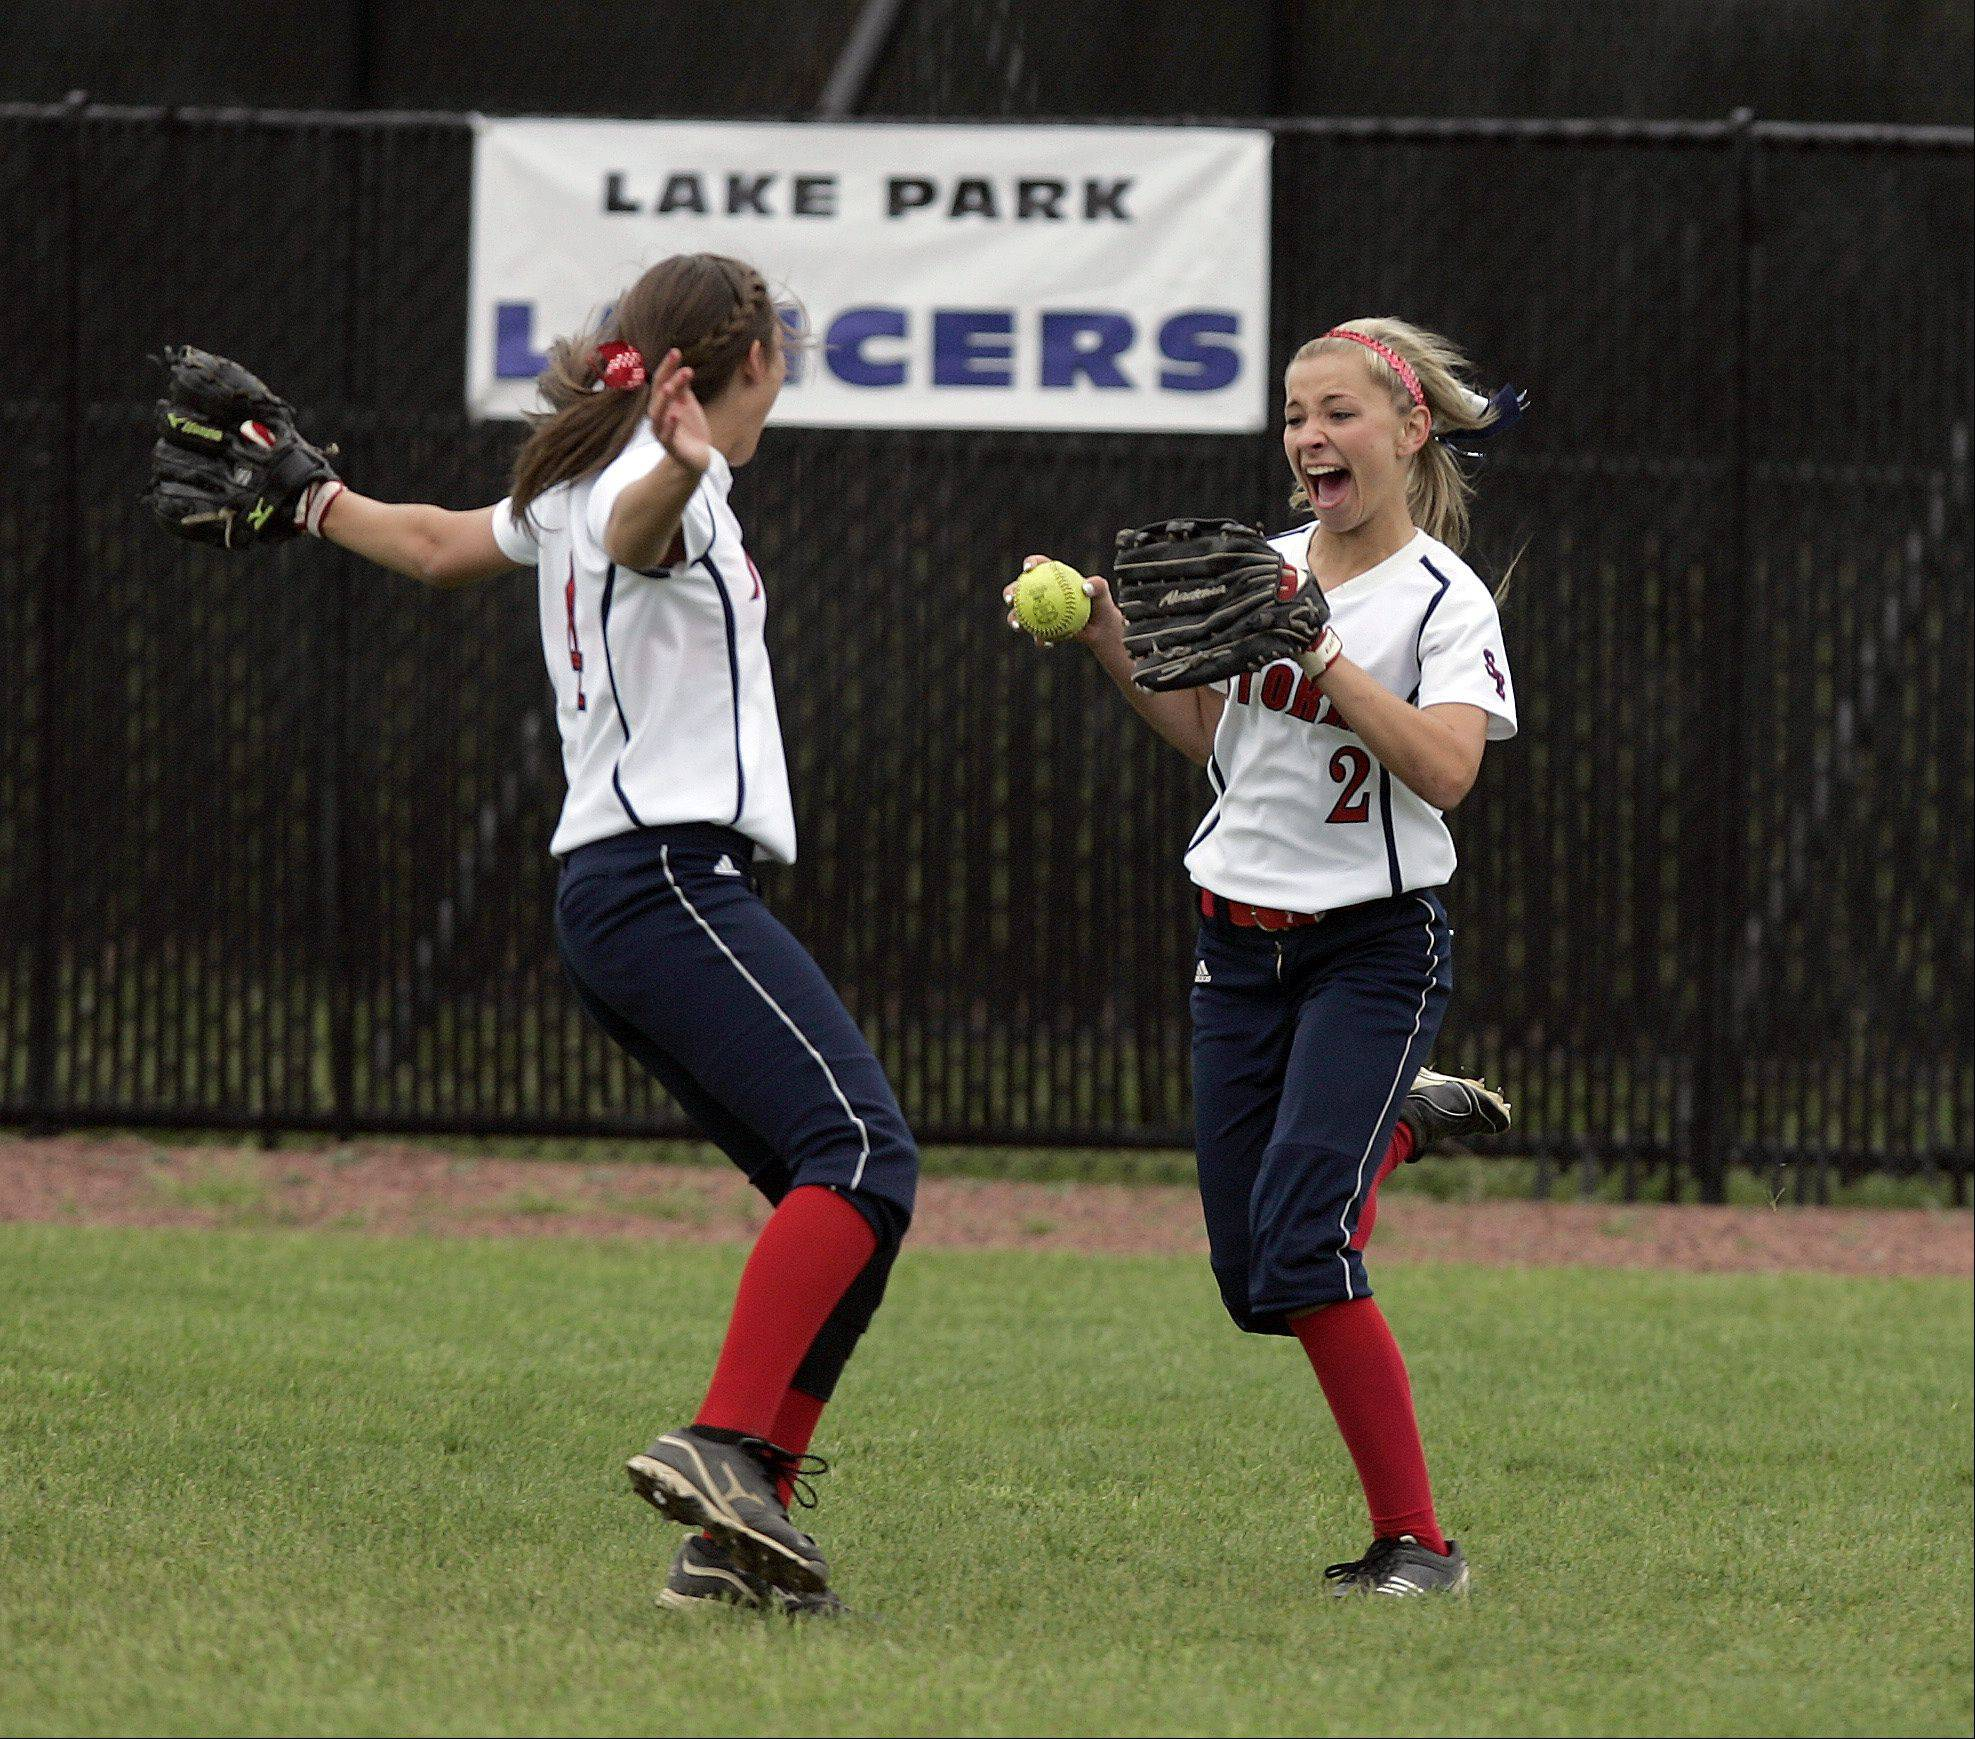 South Elgin's Mallory Mecklenburg, 2, is greeted by Brittany Koss, 4, after pulling in the last out of the Class 4A regional softball finals against St. Charles North Saturday.